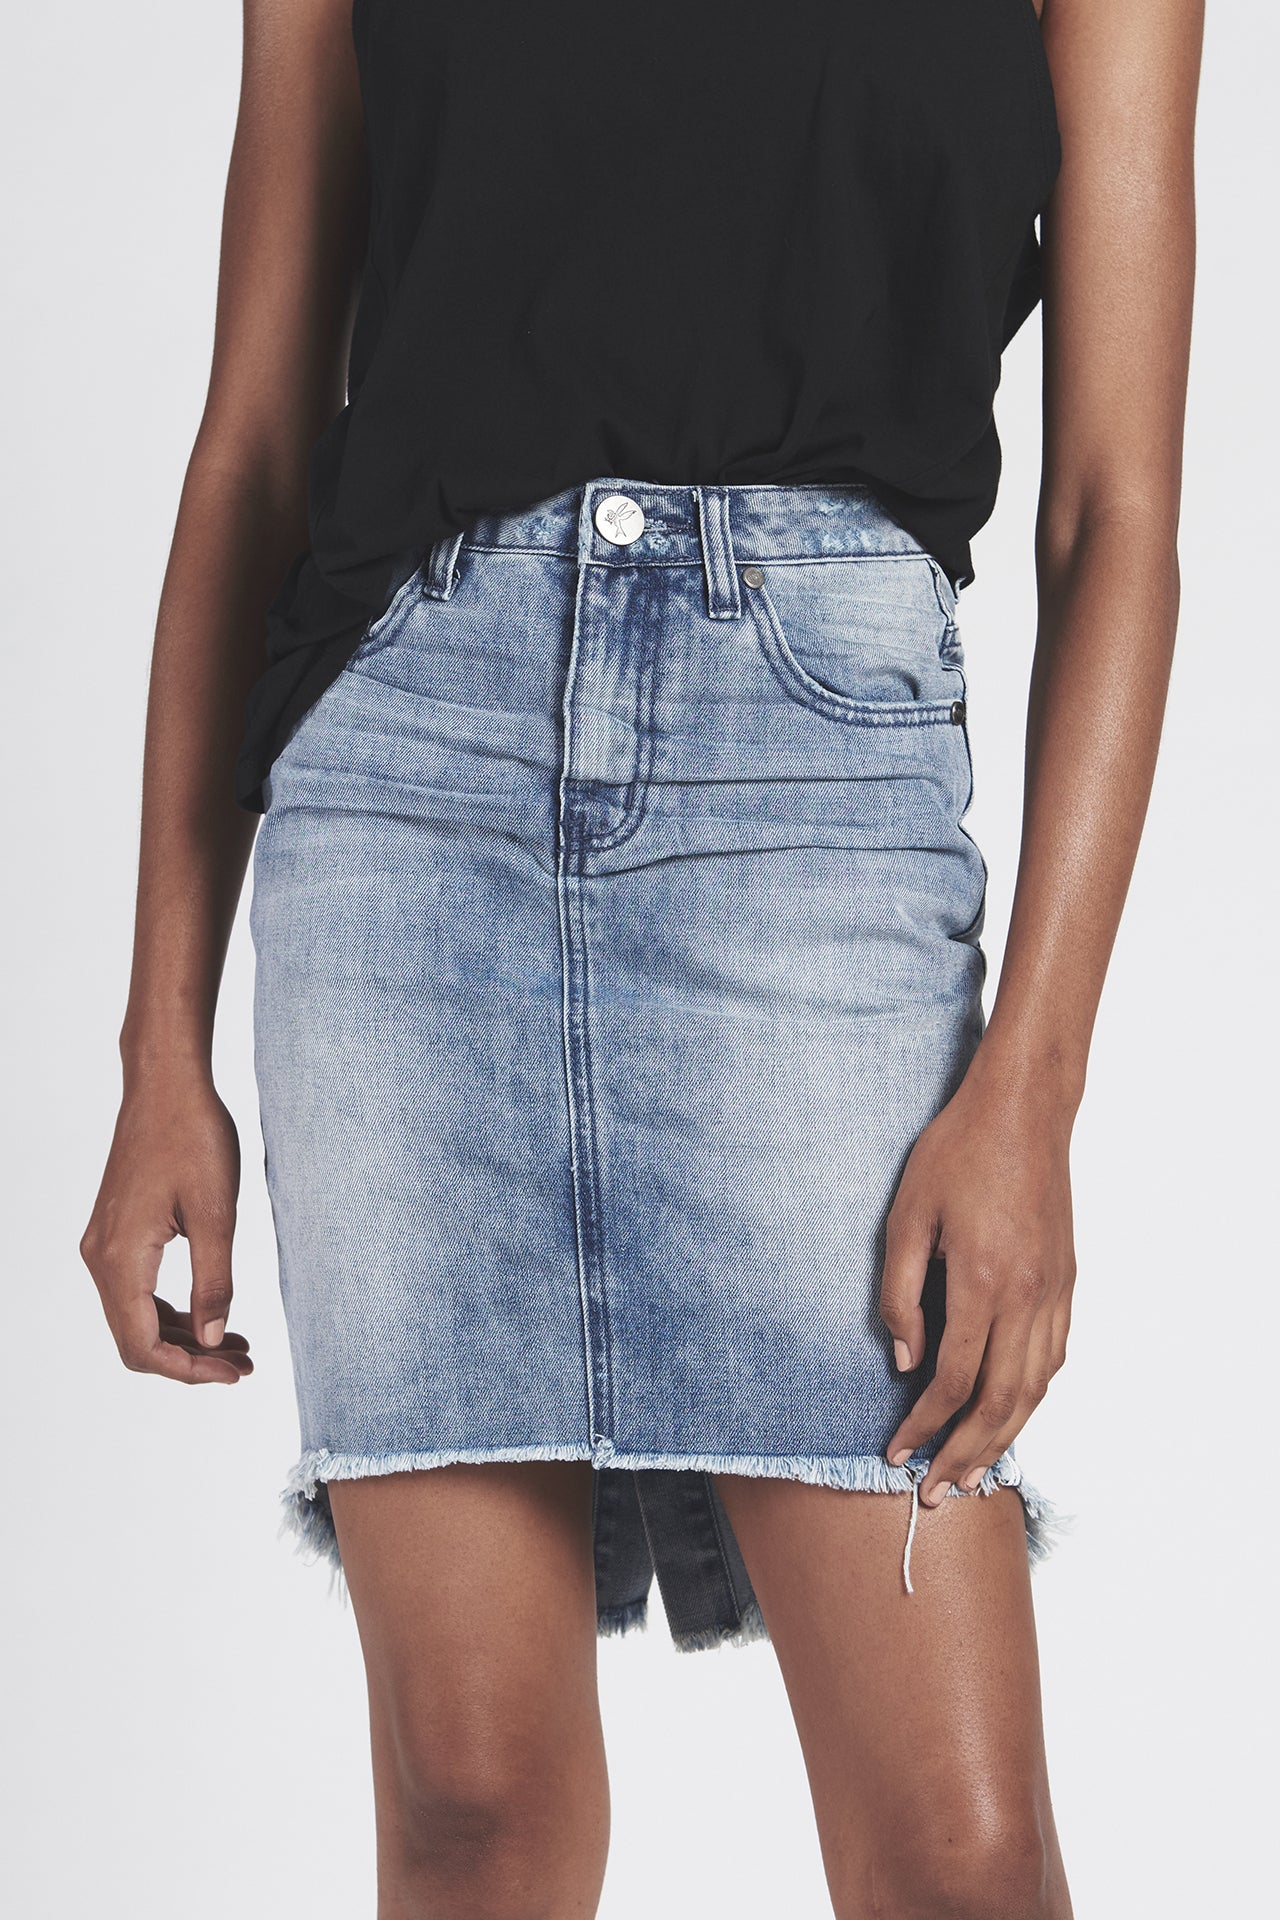 2020 Rocky High Waisted Skirt